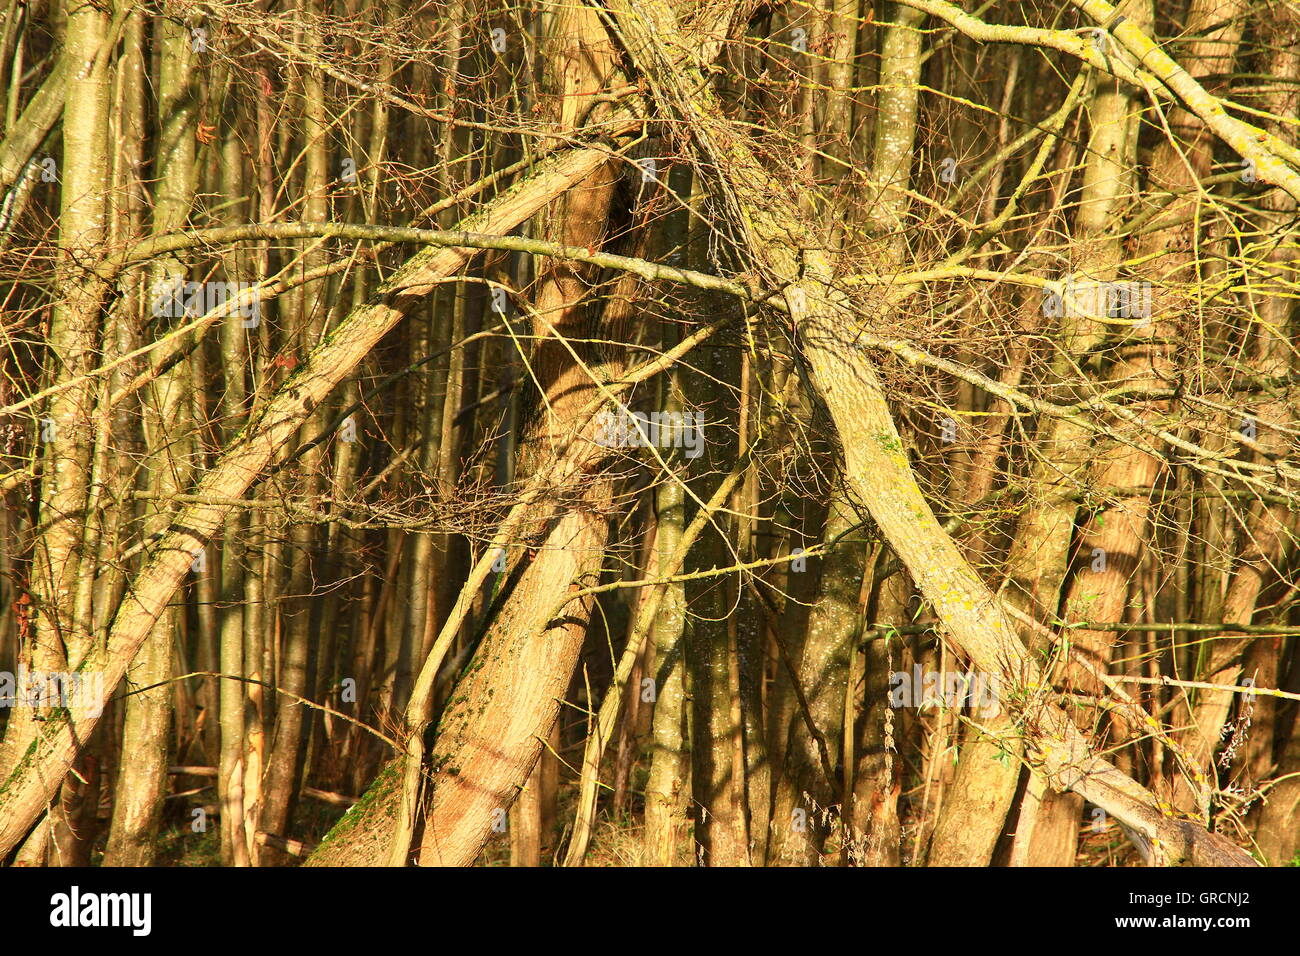 Primeval Forest - Stock Image